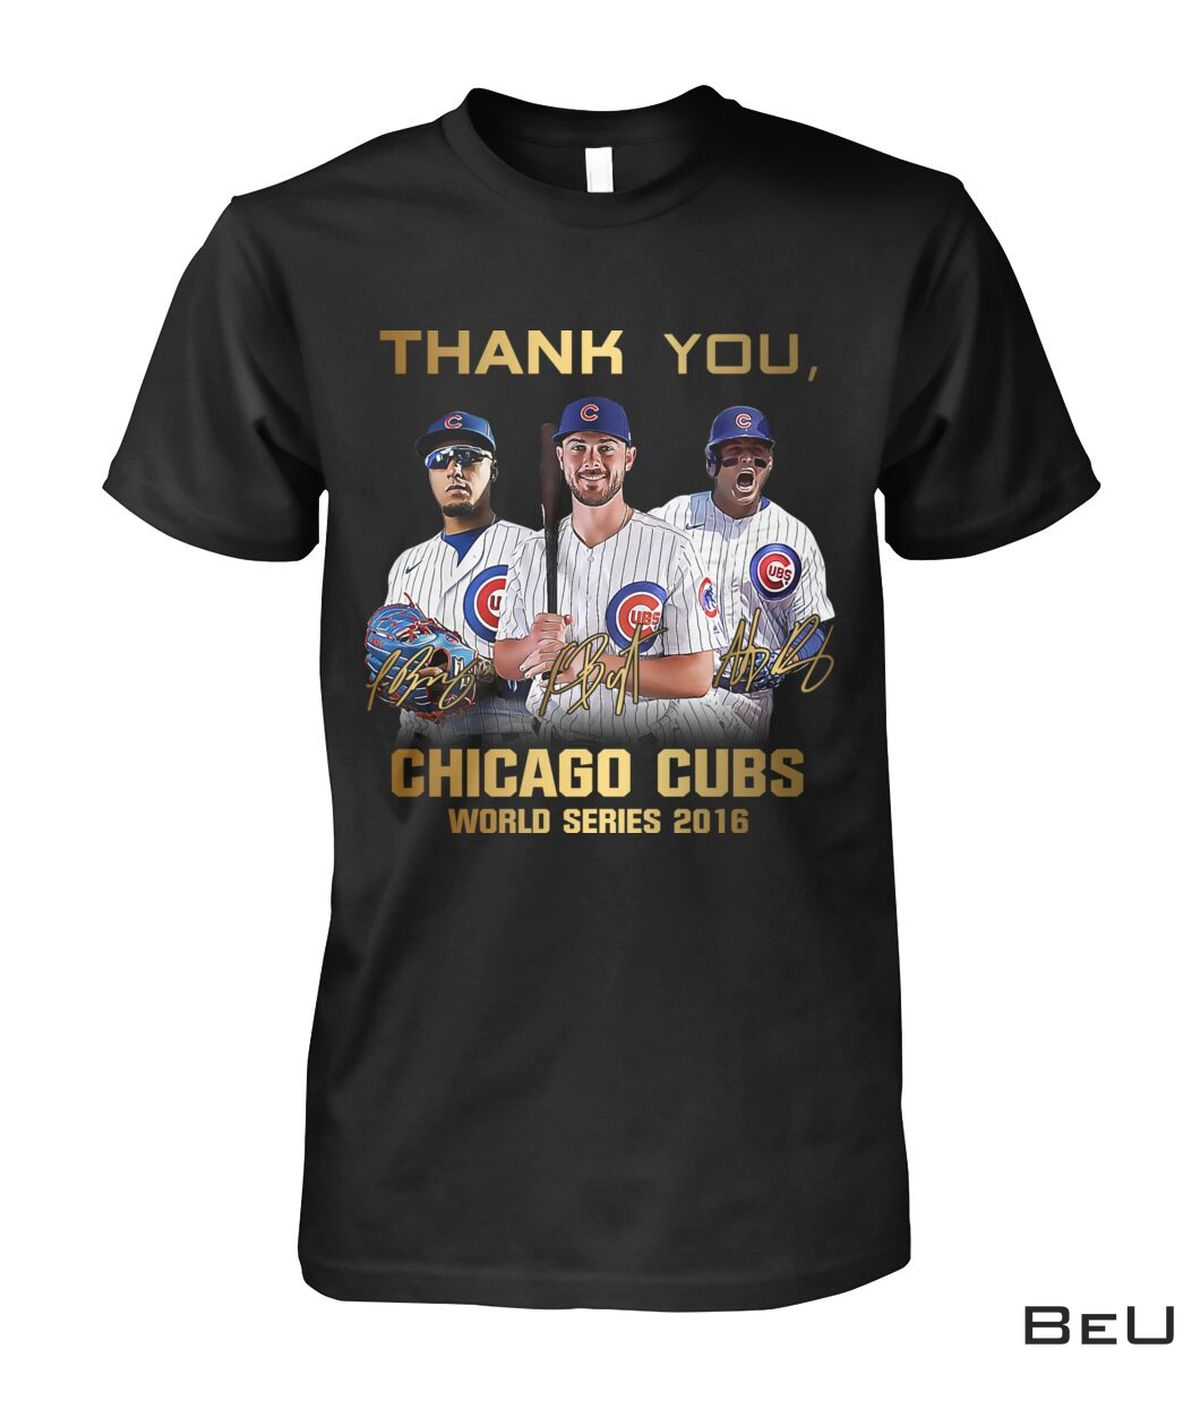 Real Thank You Chicago Cubs World Series 2016 Player Signatures Shirt, hoodie, tank top